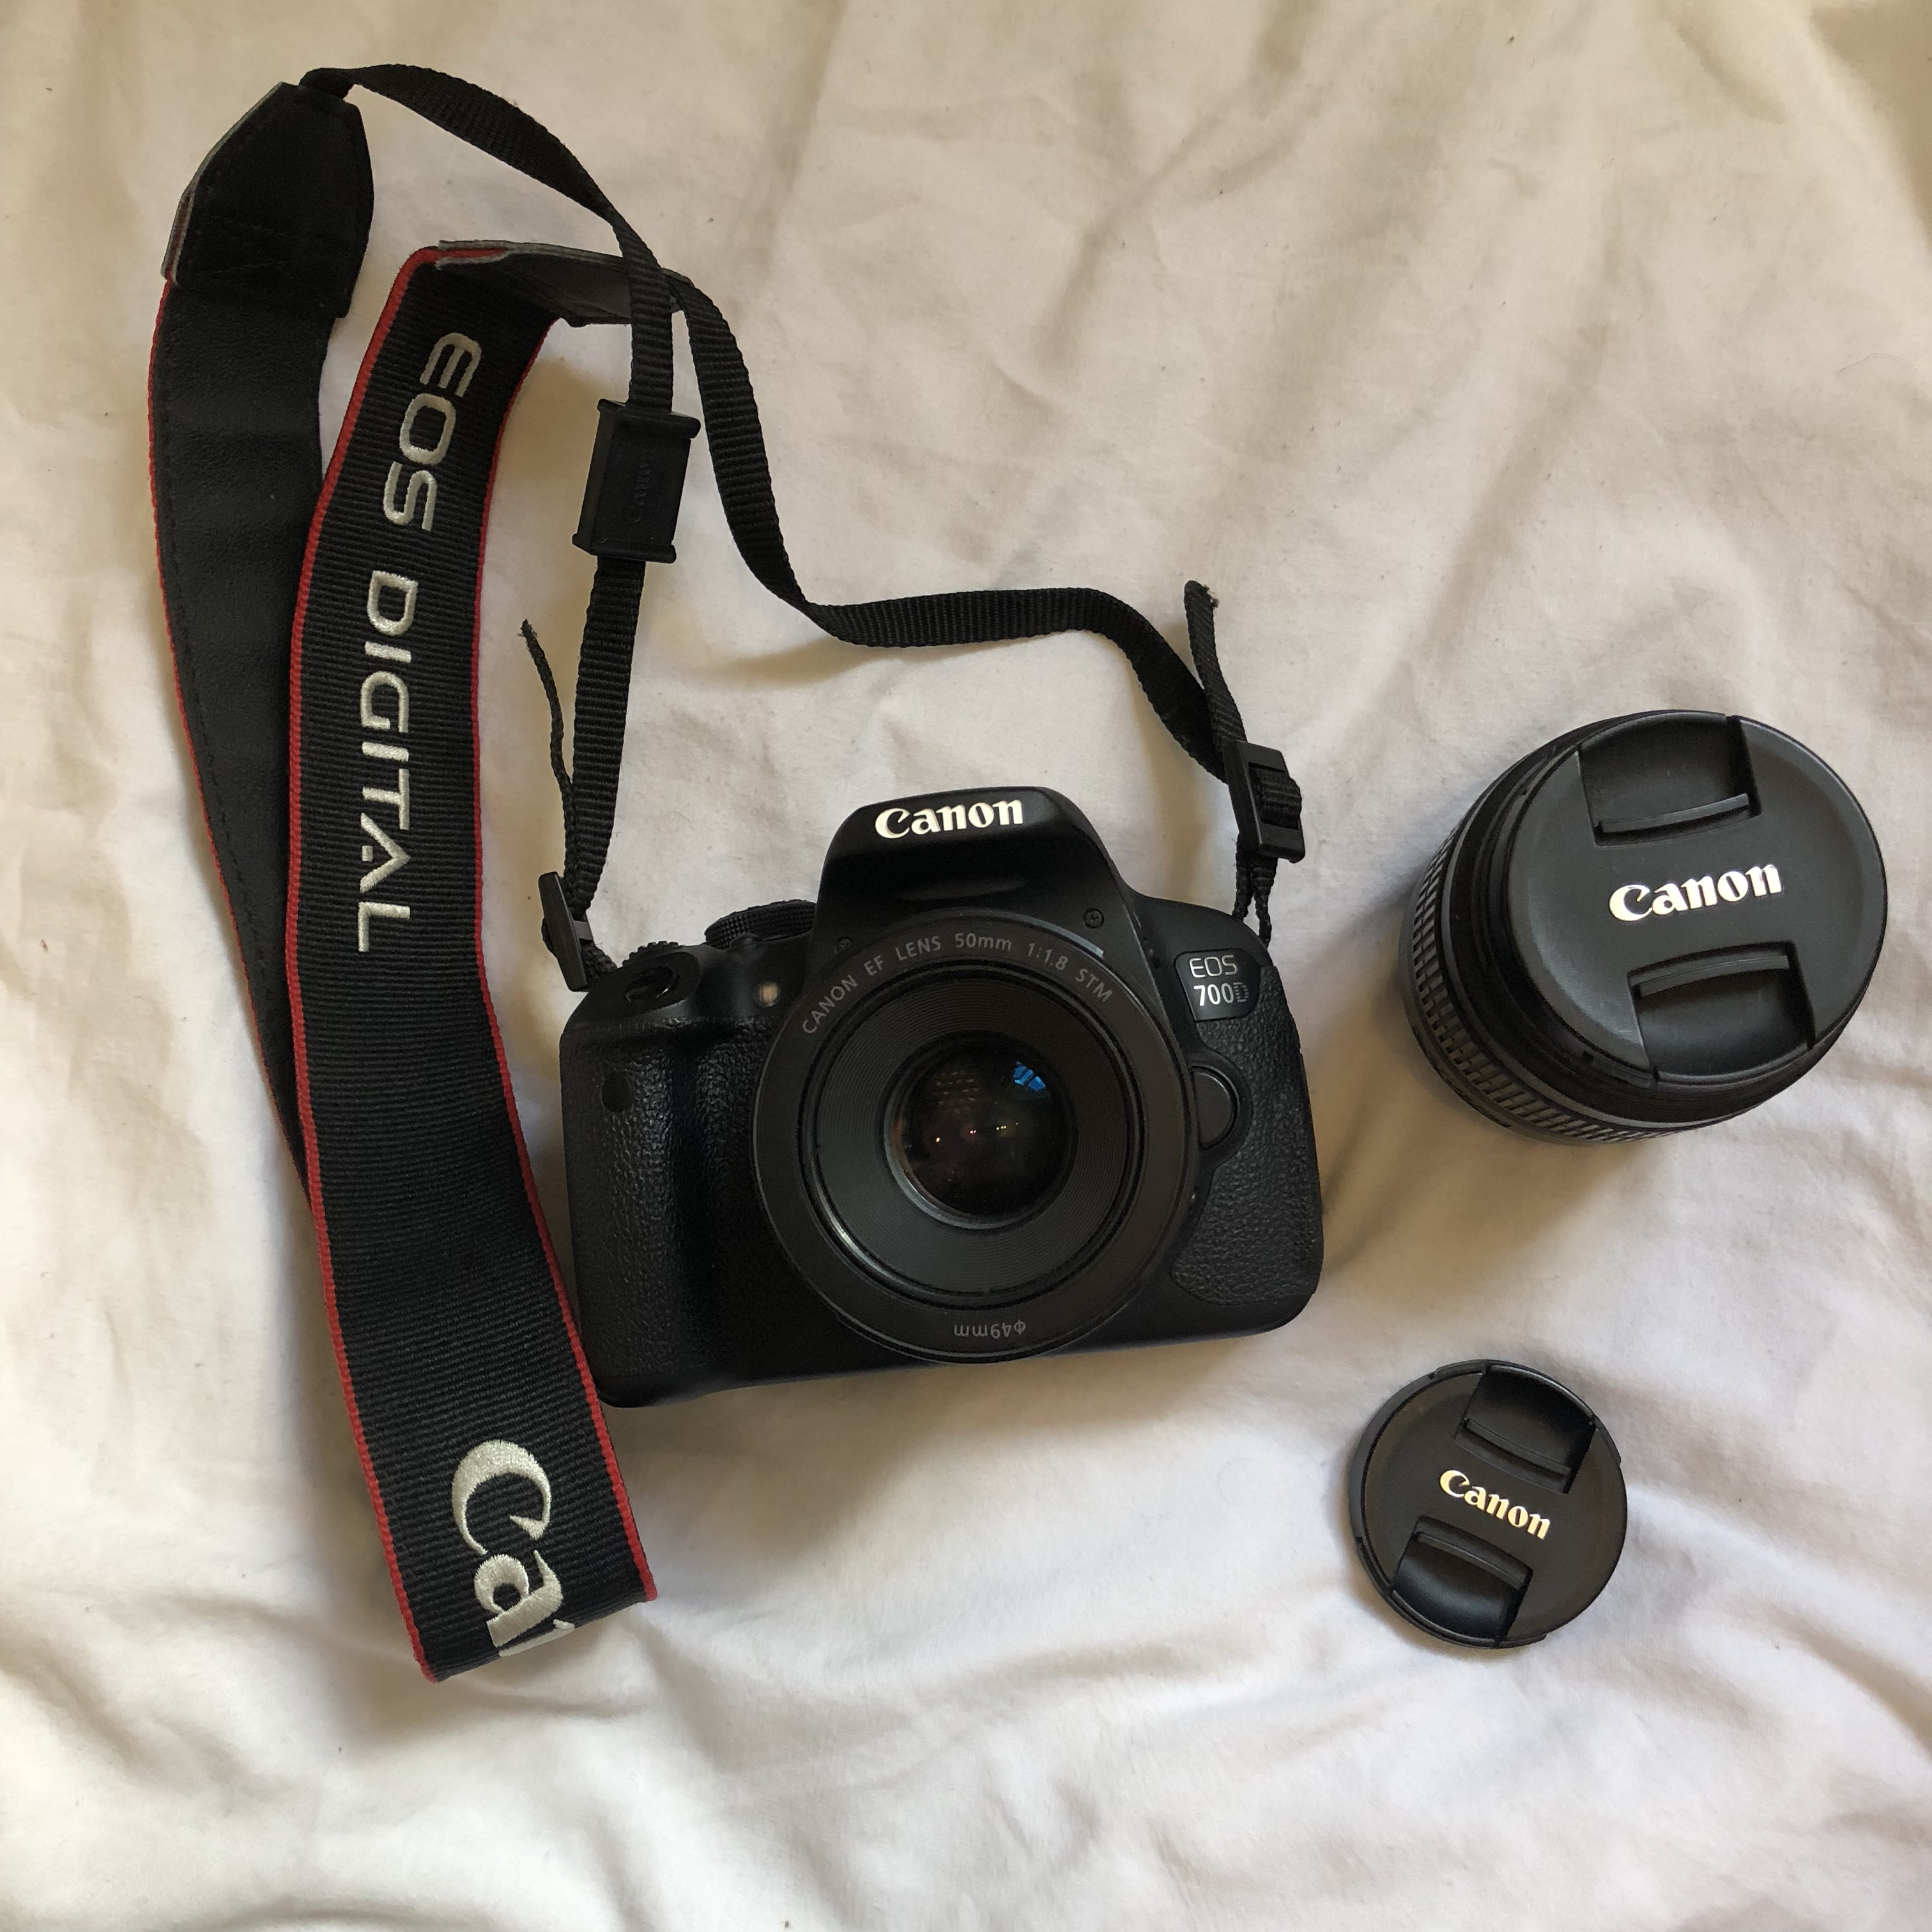 Canon EOS 700D with 18-55mm and 50mm 1 8 lenses  It